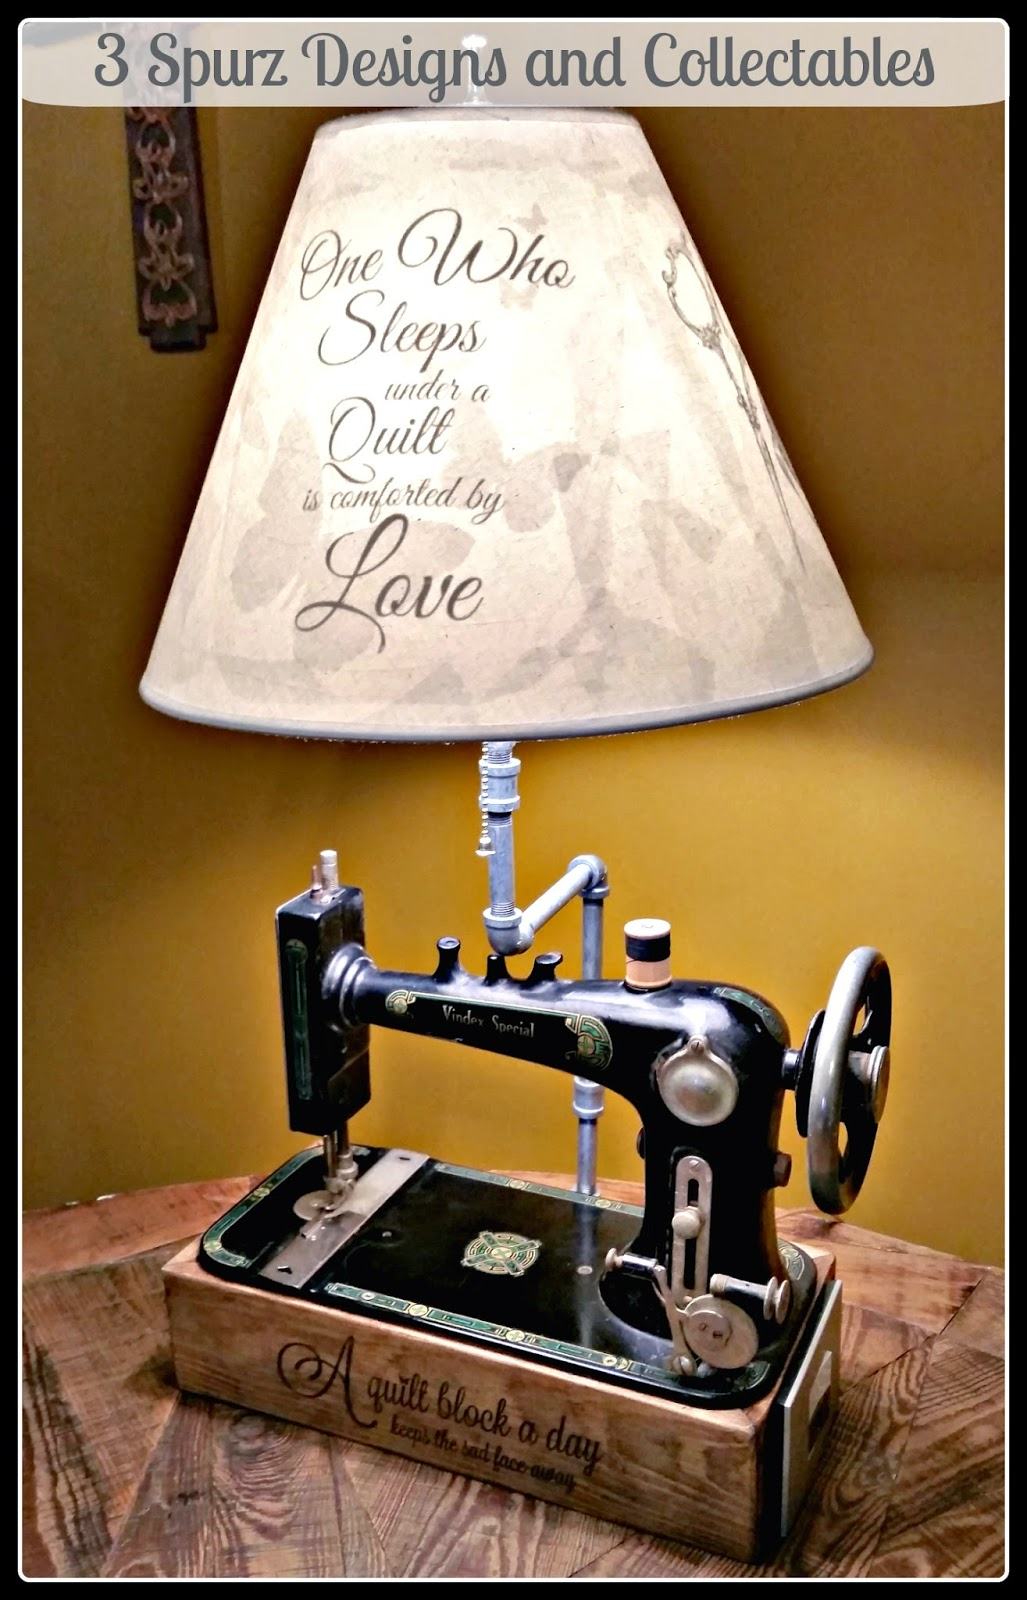 3 spurz dandc repurposed refurbished creations repurpose sewing machine lighting. Black Bedroom Furniture Sets. Home Design Ideas